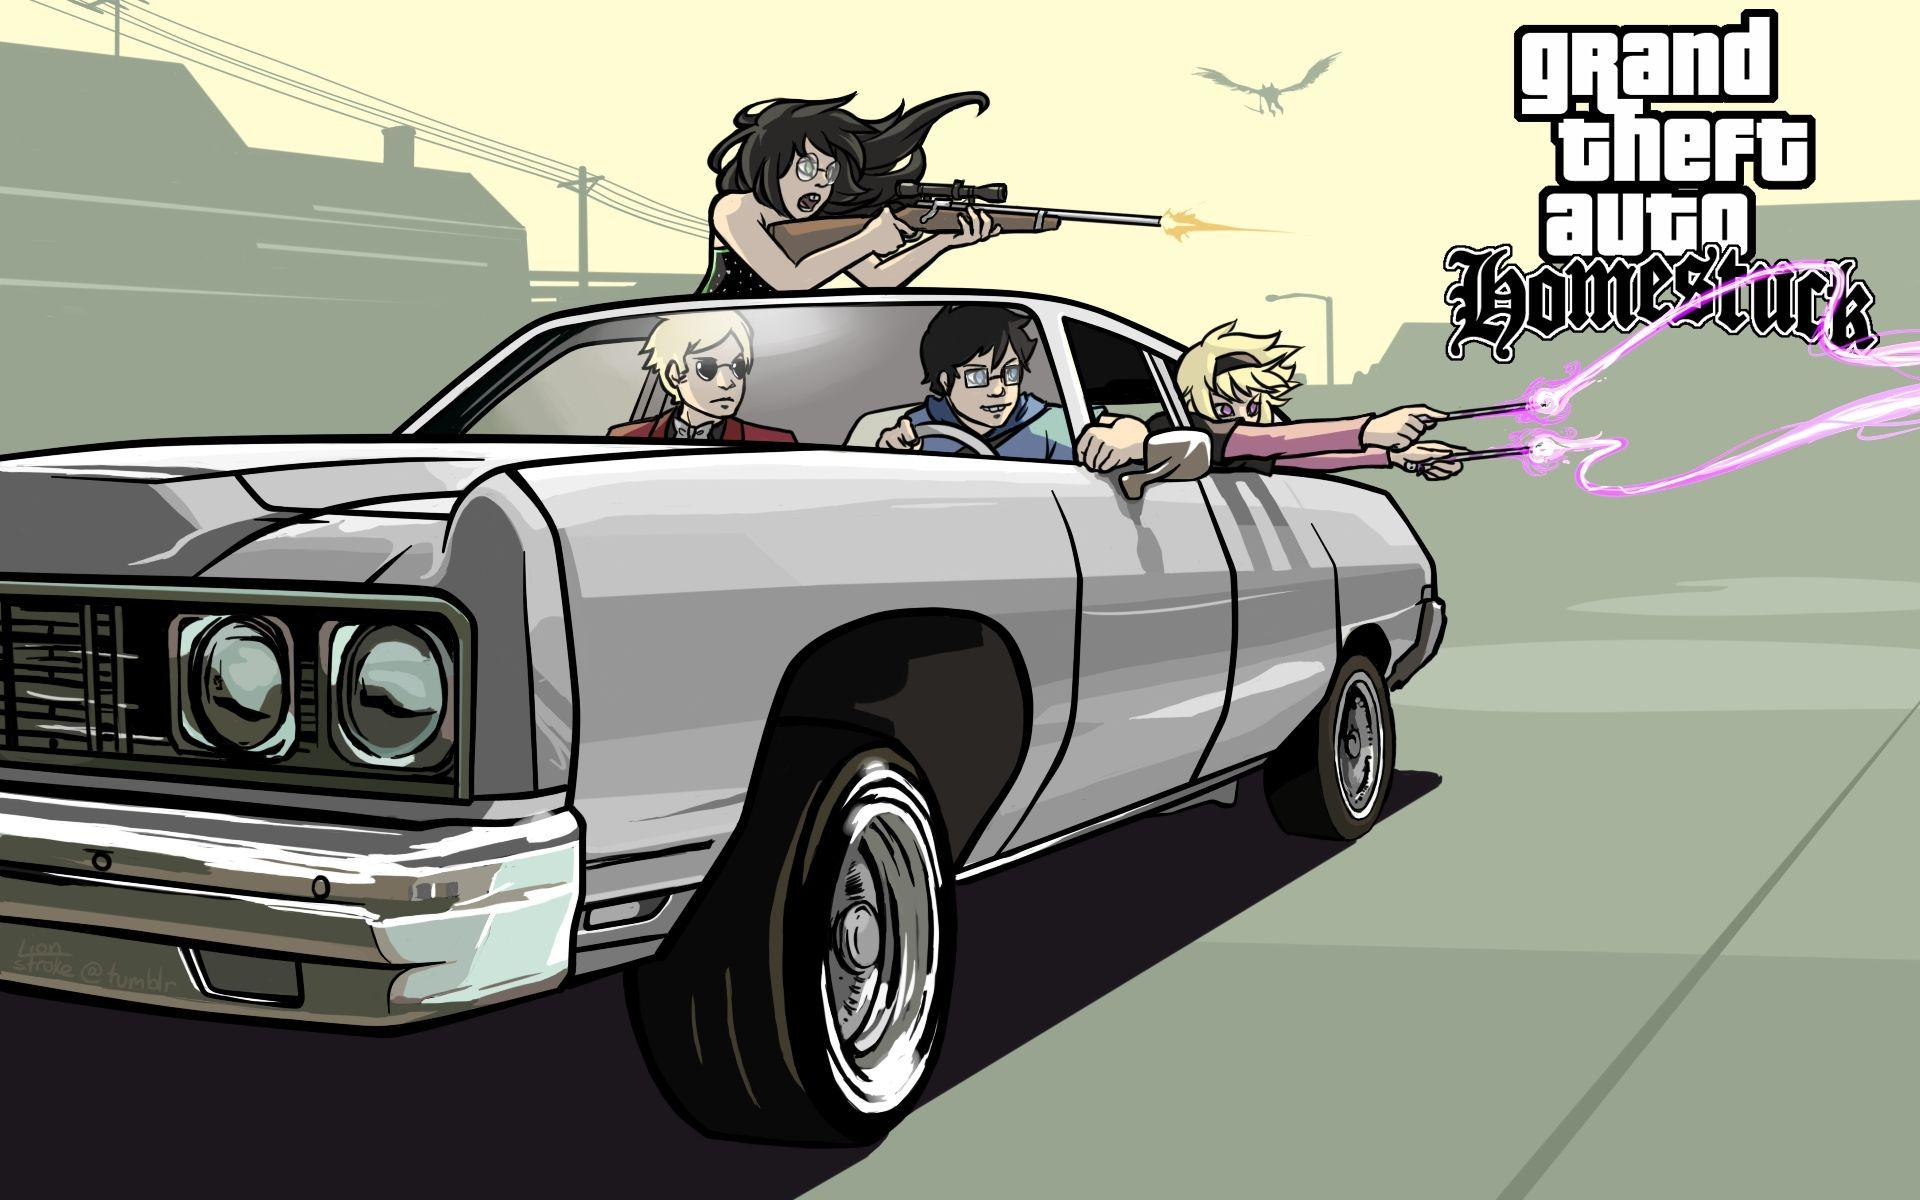 Grand Theft Auto Homestuck, HD Games, 4k Wallpapers, Image